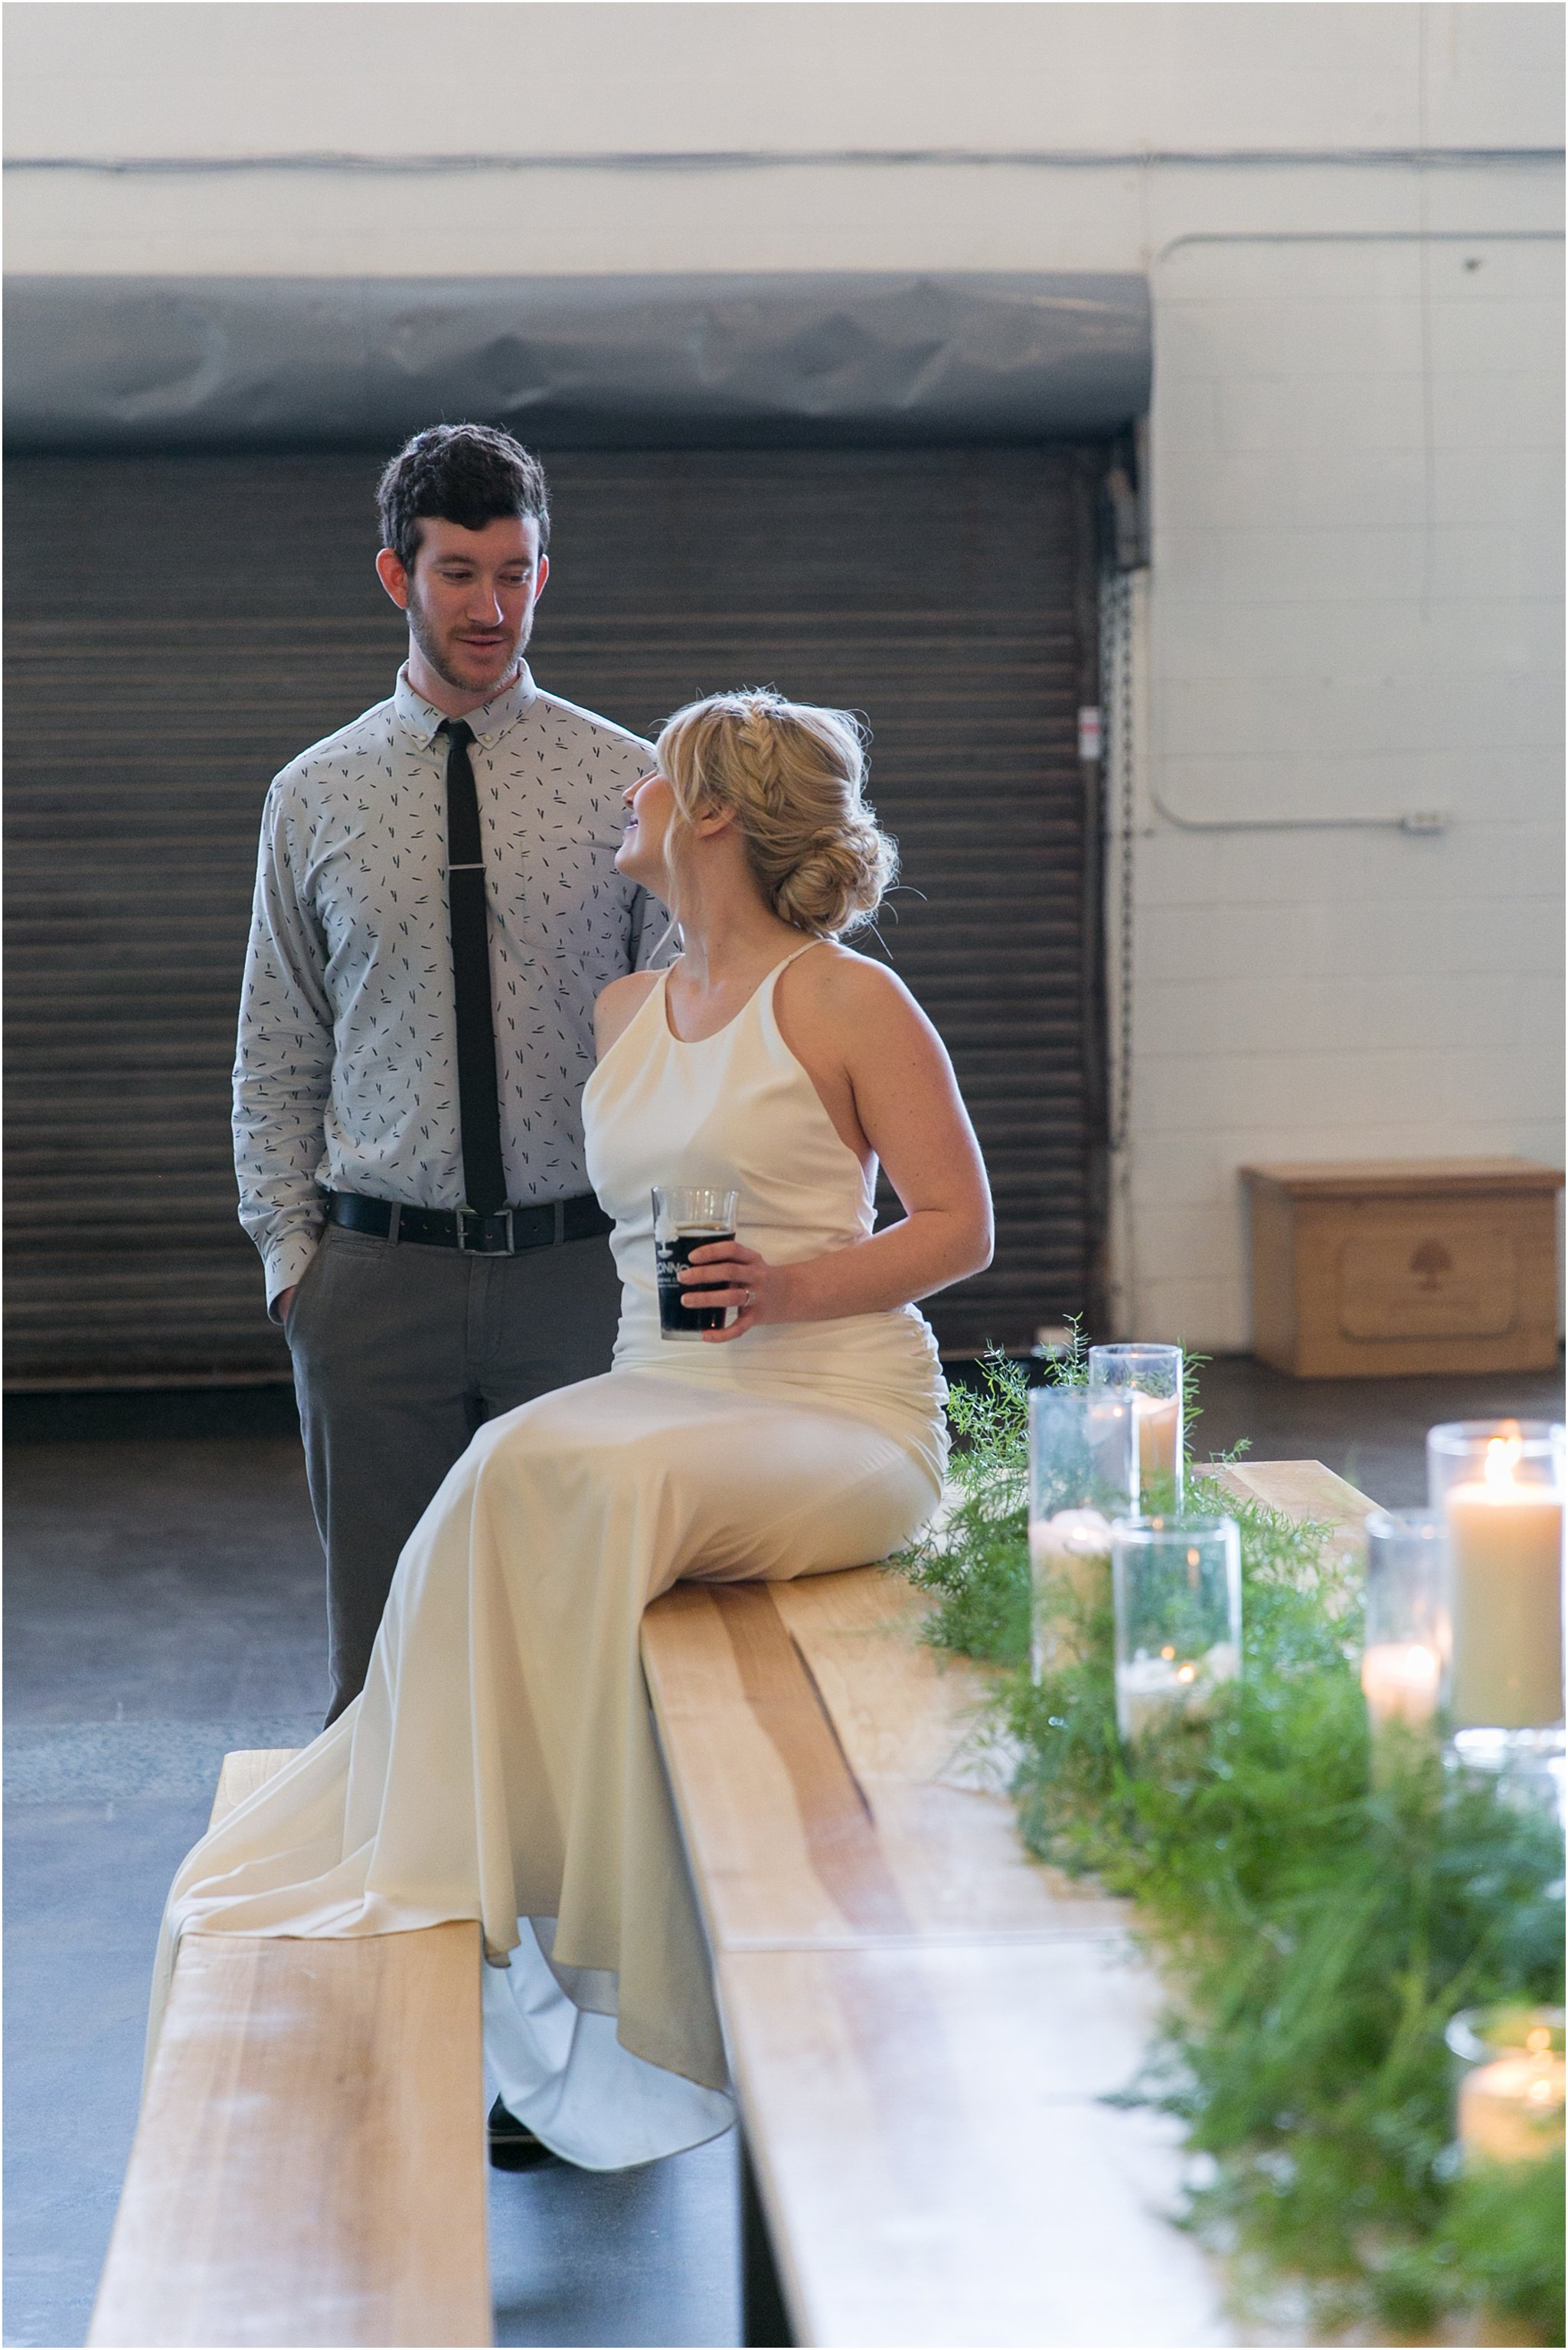 jessica_ryan_photography_oconnor_brewing_wedding_oconnor_brewing_co_norfolk_virginia_roost_flowers_blue_birds_garage__0825